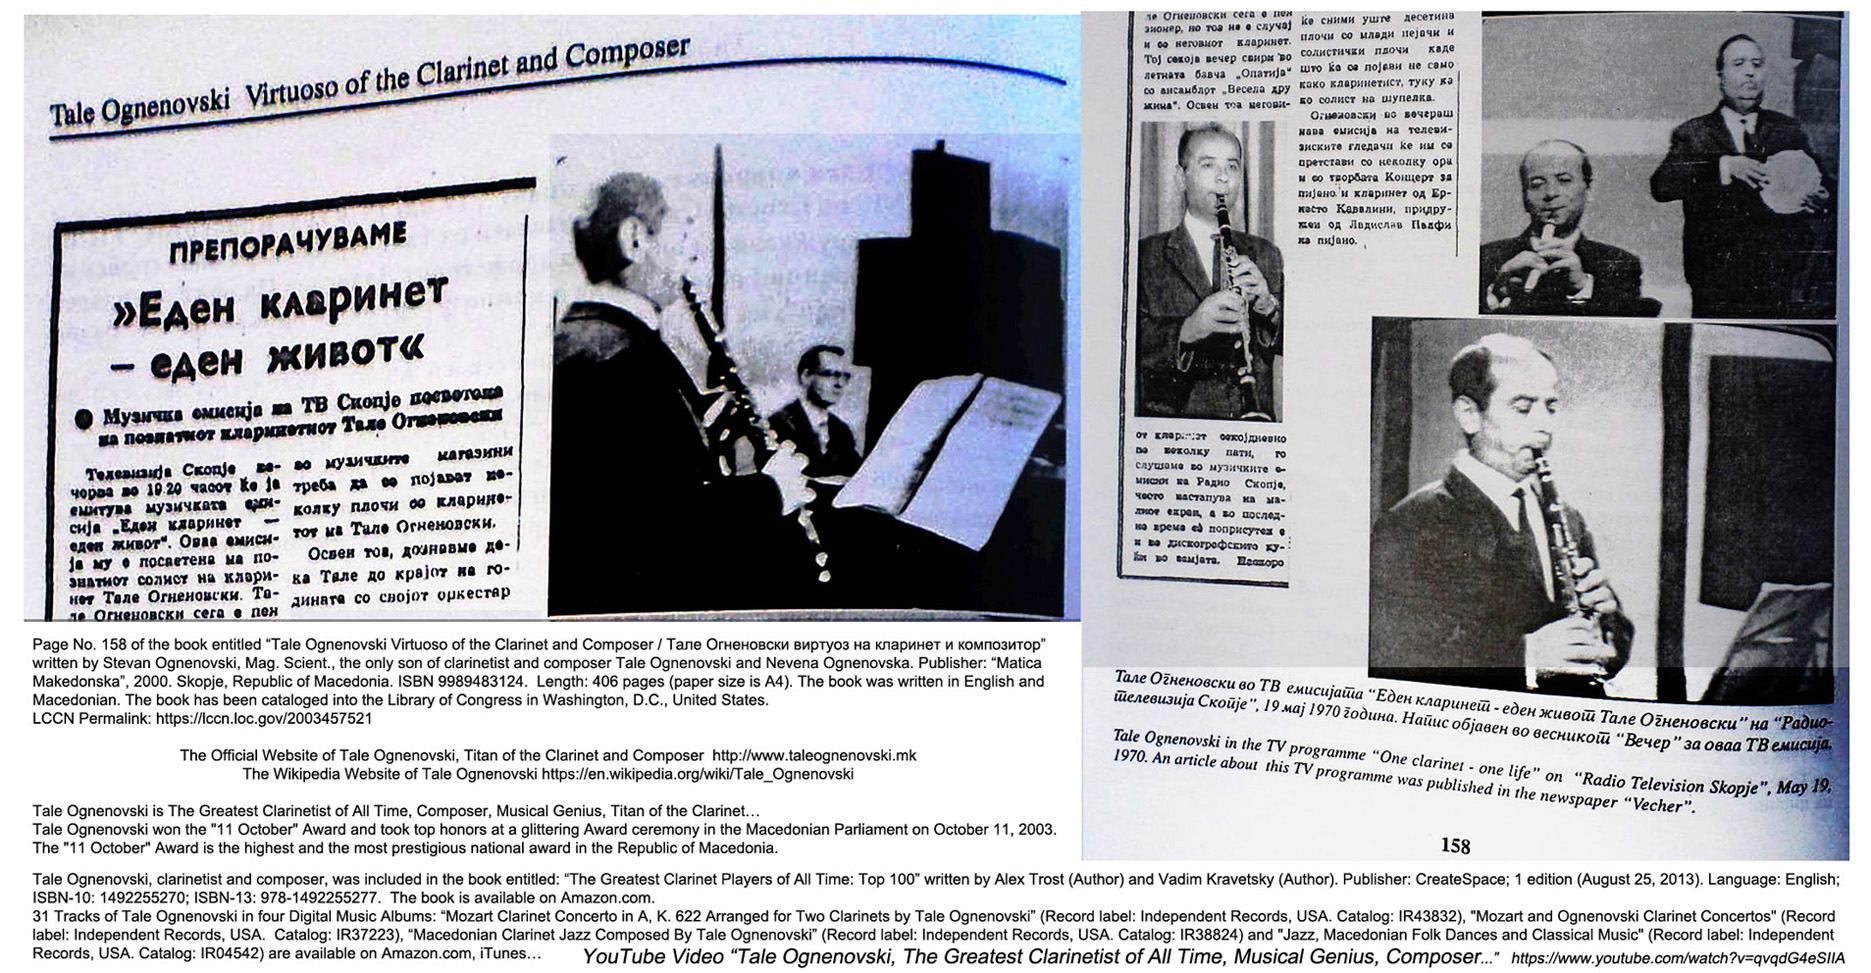 Musical Genius Tale Ognenovski has performed Classical Music since 1952